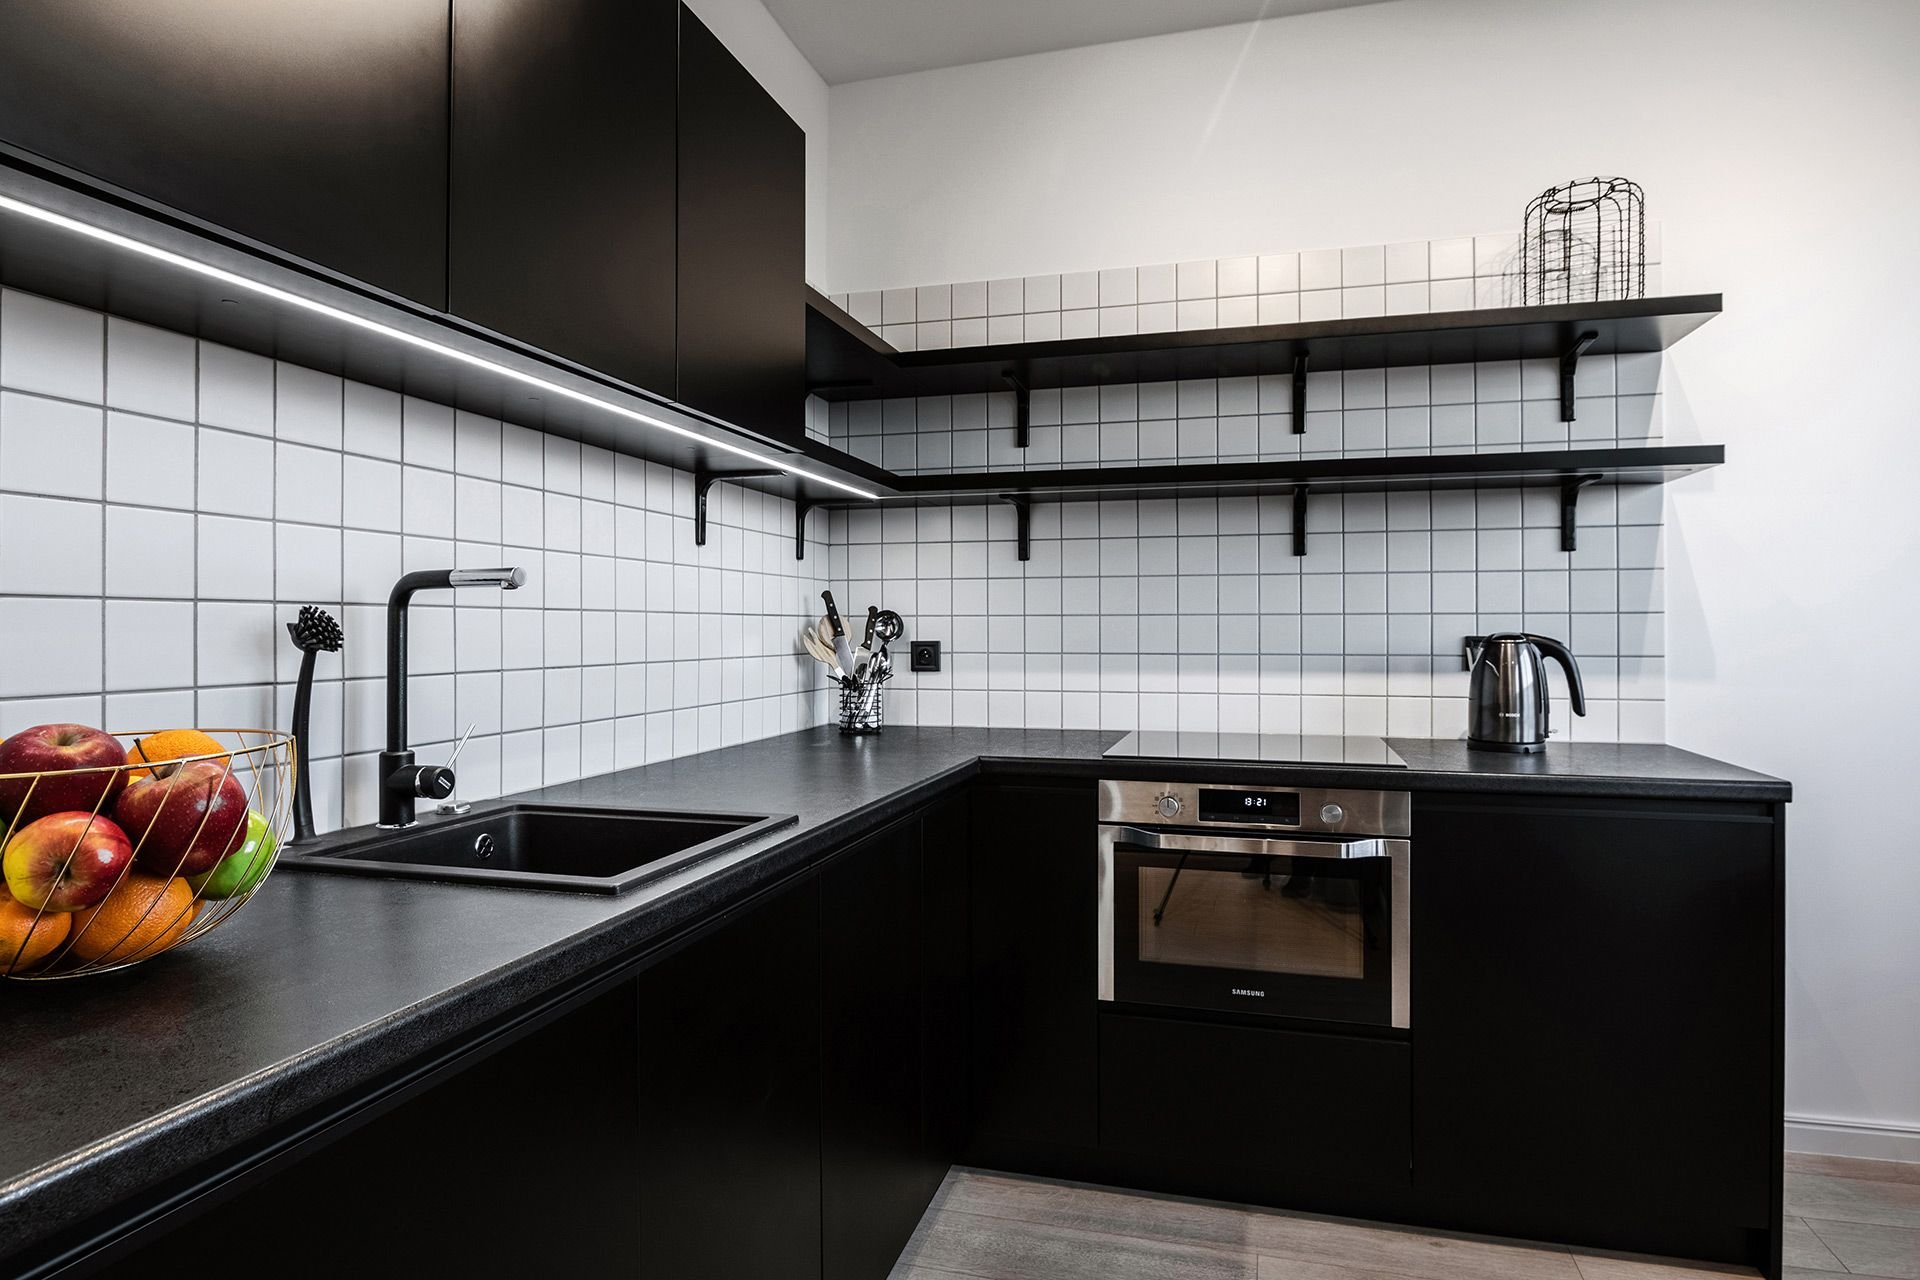 Studio - Large apartment to rent in Warsaw UPR-A-056-1